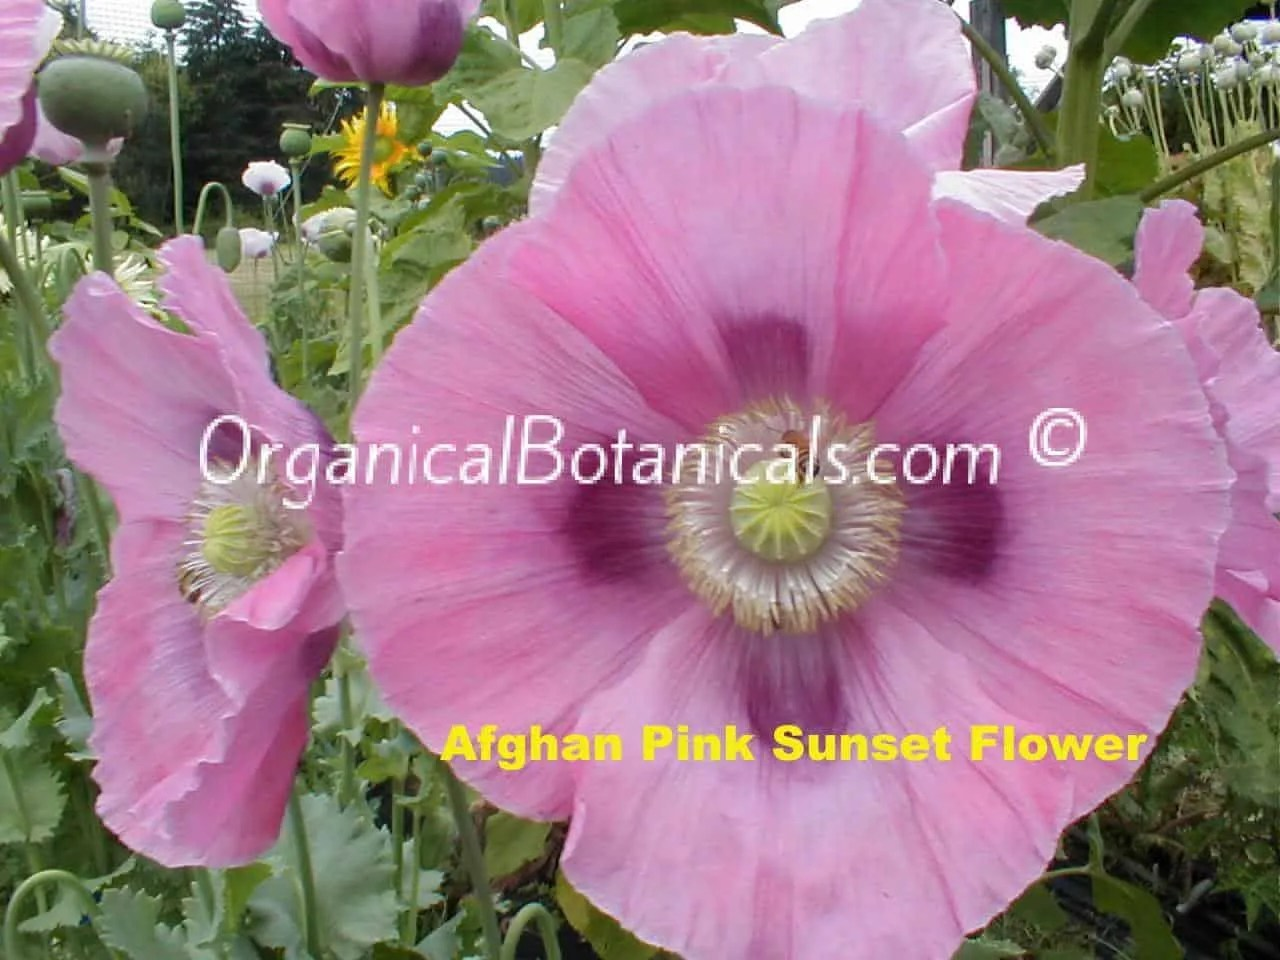 'Afghan Pink Sunset' Papaver Somniferum Poppy Flower